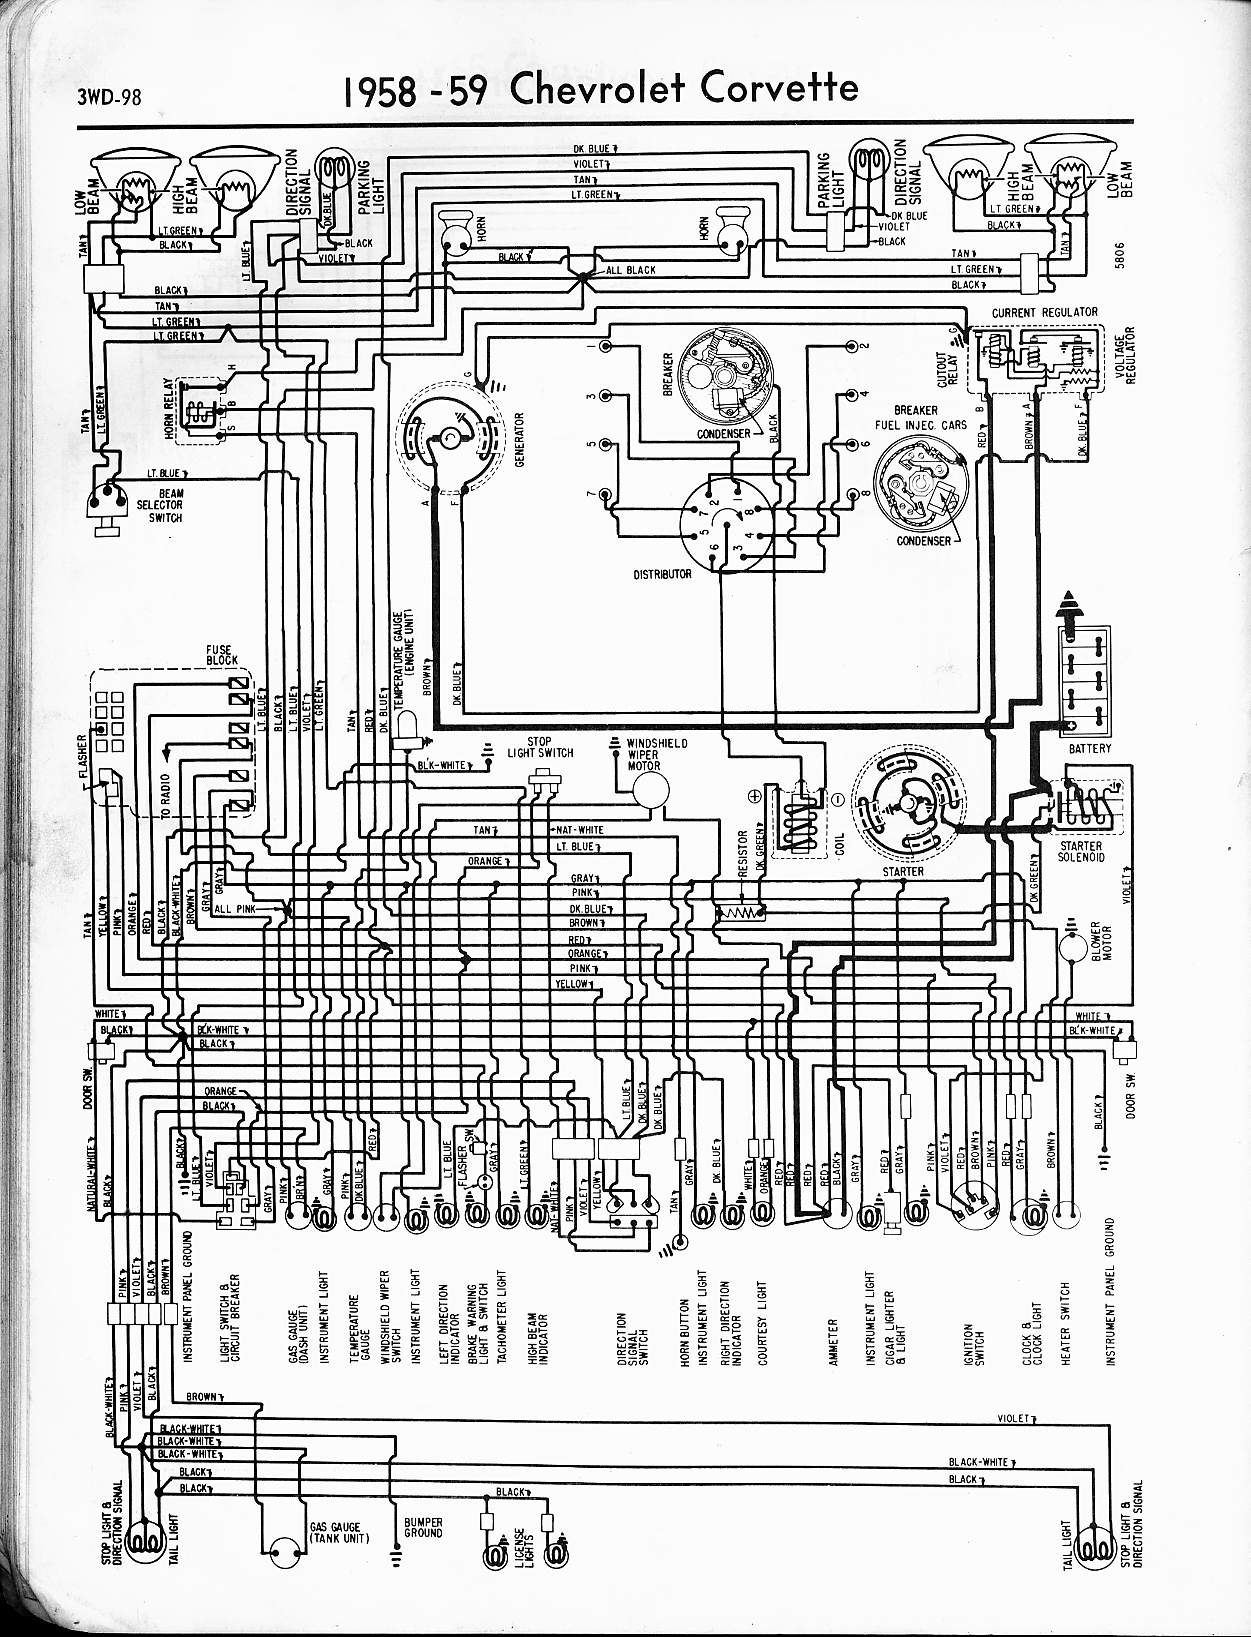 MWireChev58_3WD 098 57 65 chevy wiring diagrams 1959 ford wiring diagram at gsmx.co